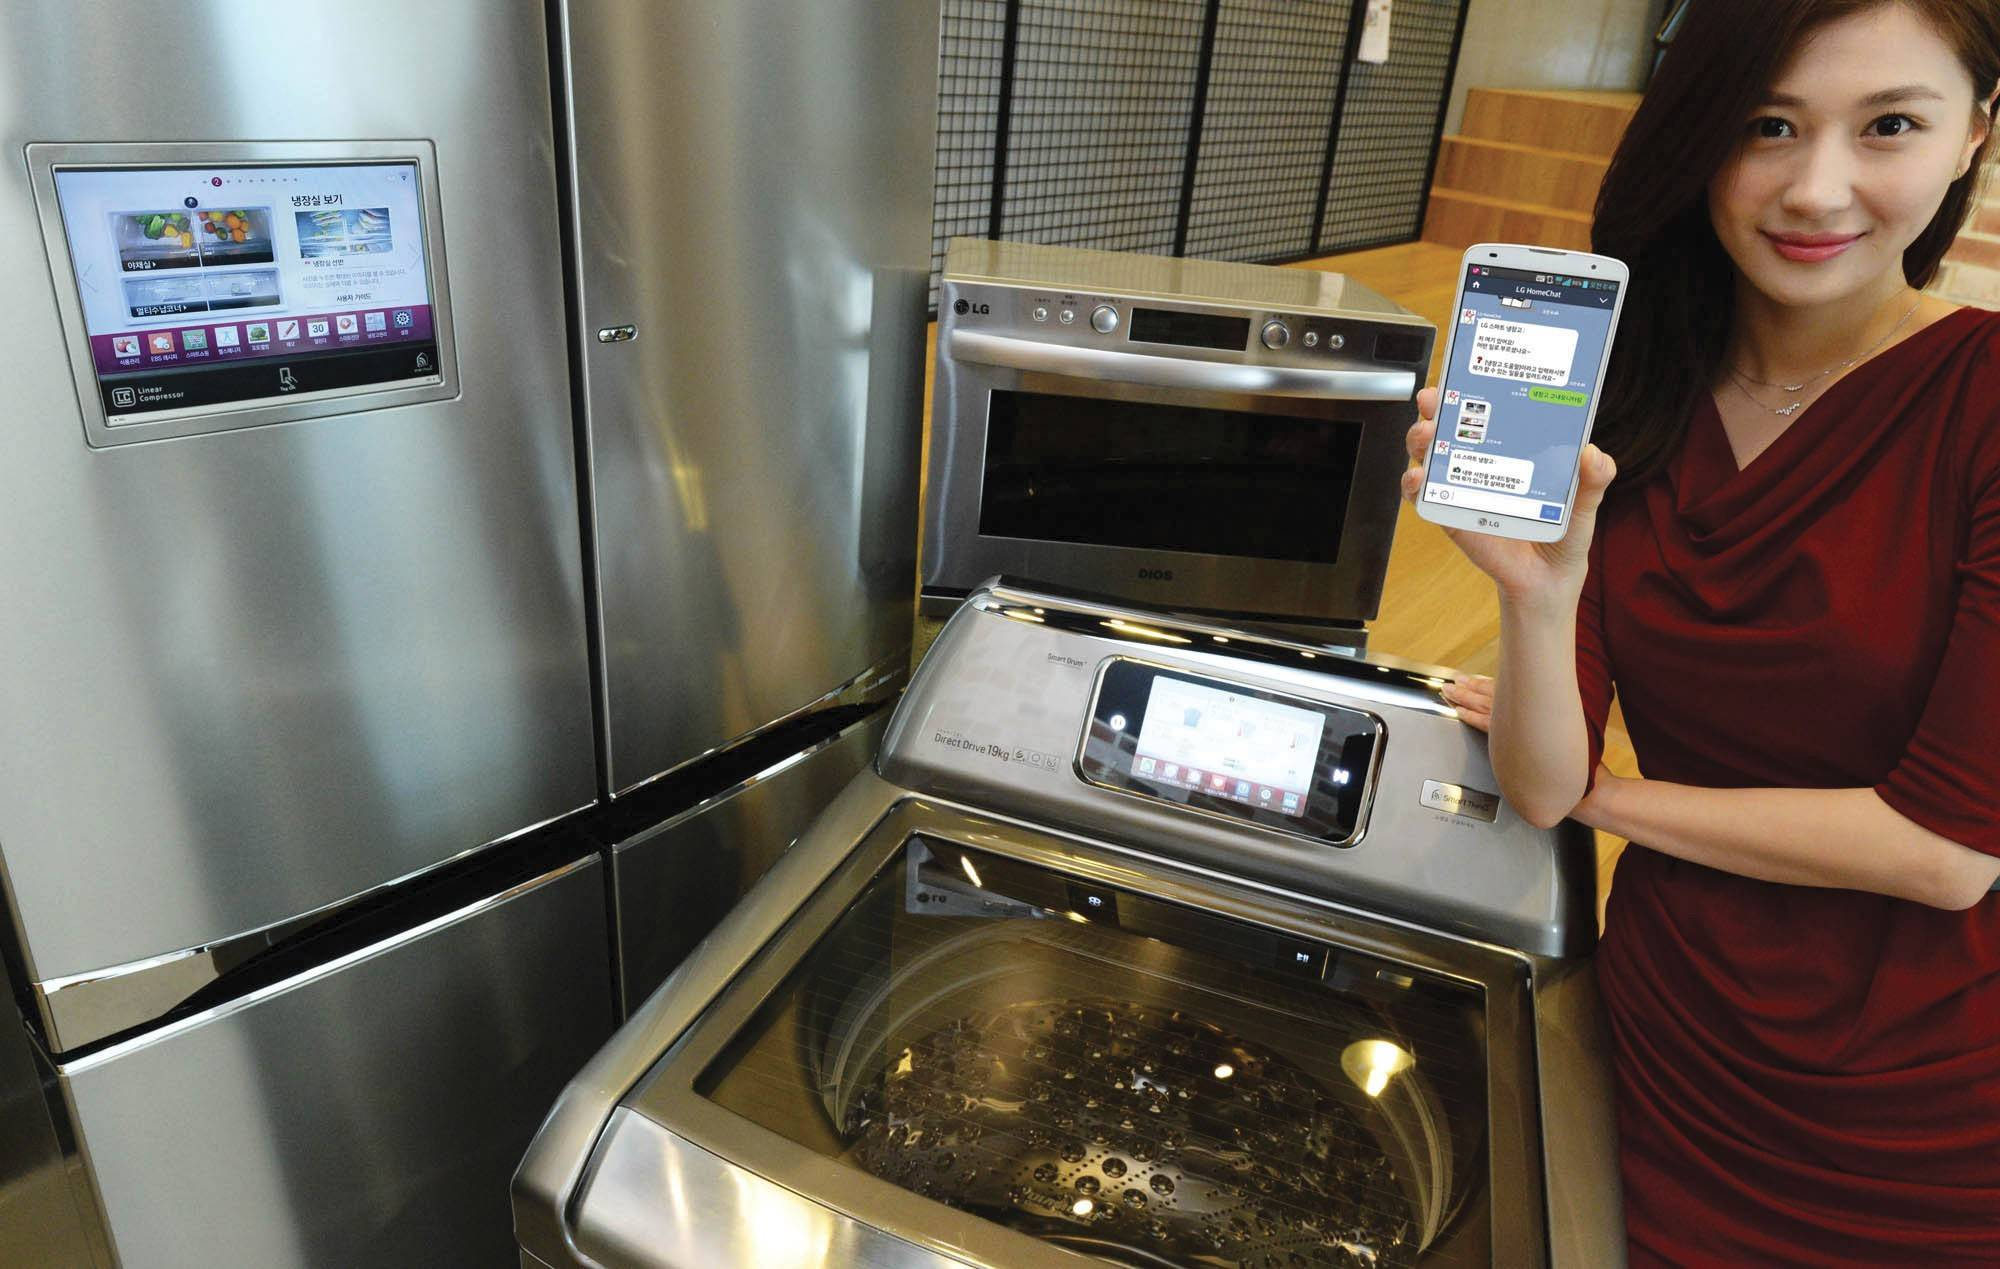 LG's 'HomeChat' makes it possible to communicate with appliances via text message.